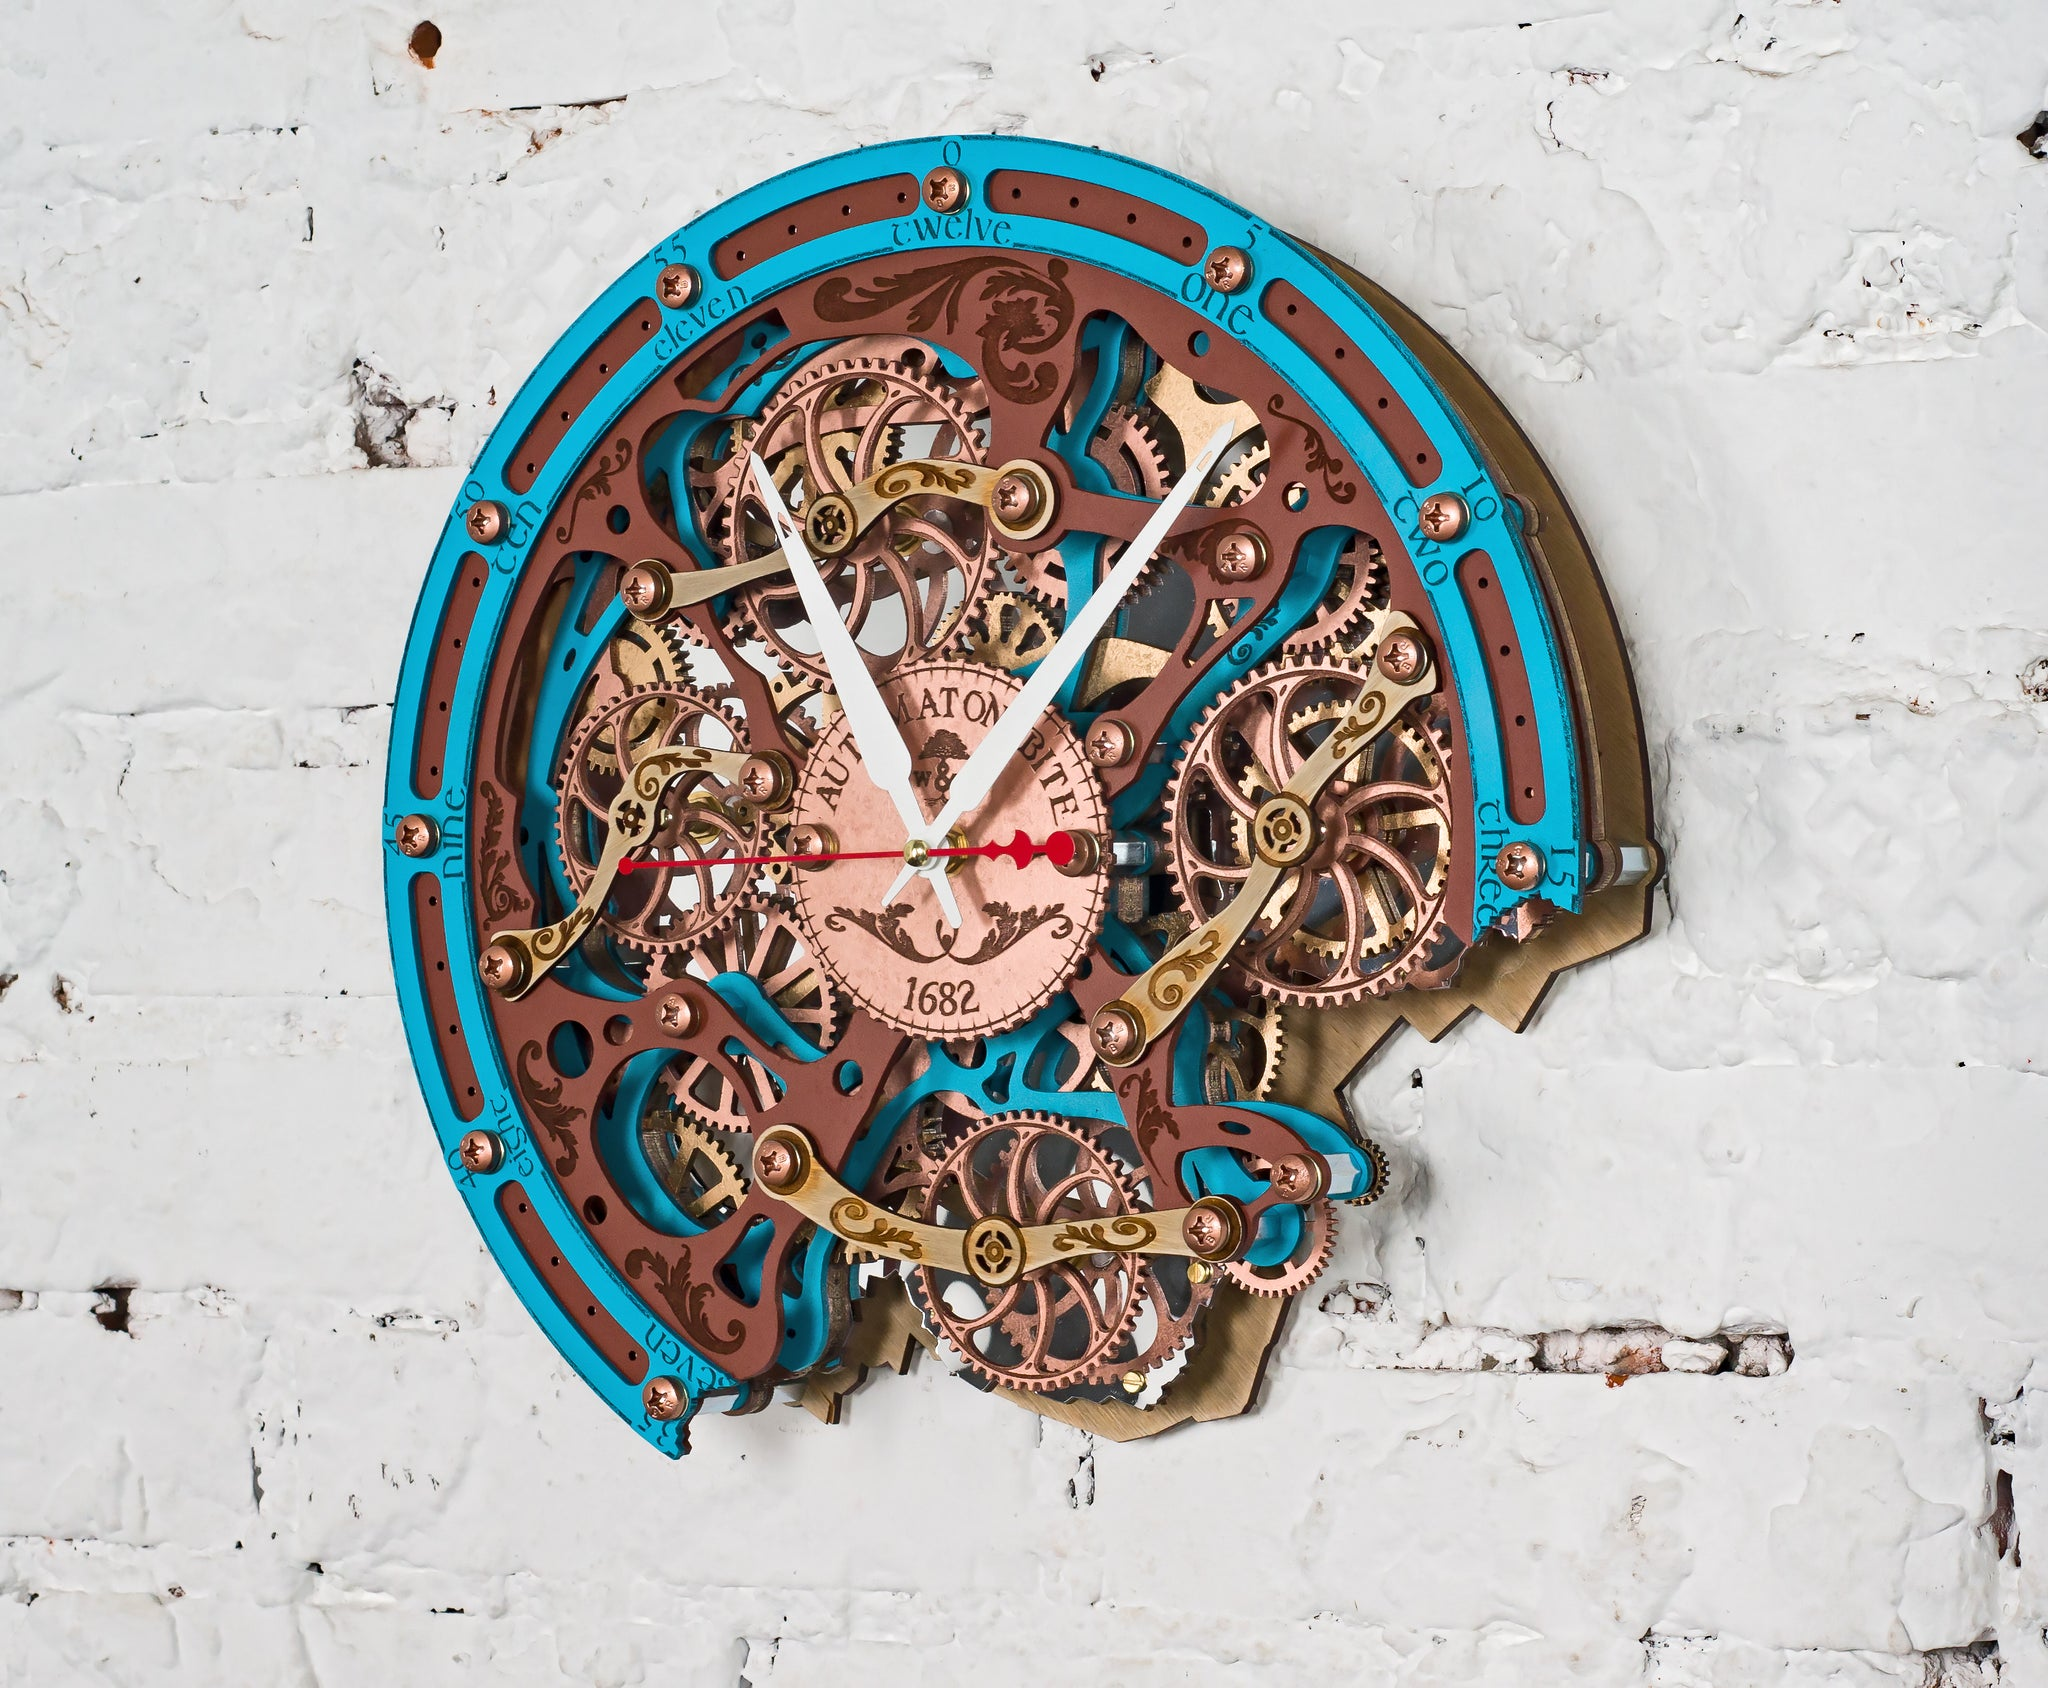 Automaton Bite 1682 Turquoise Brown Wall Clock - WOODANDROOT